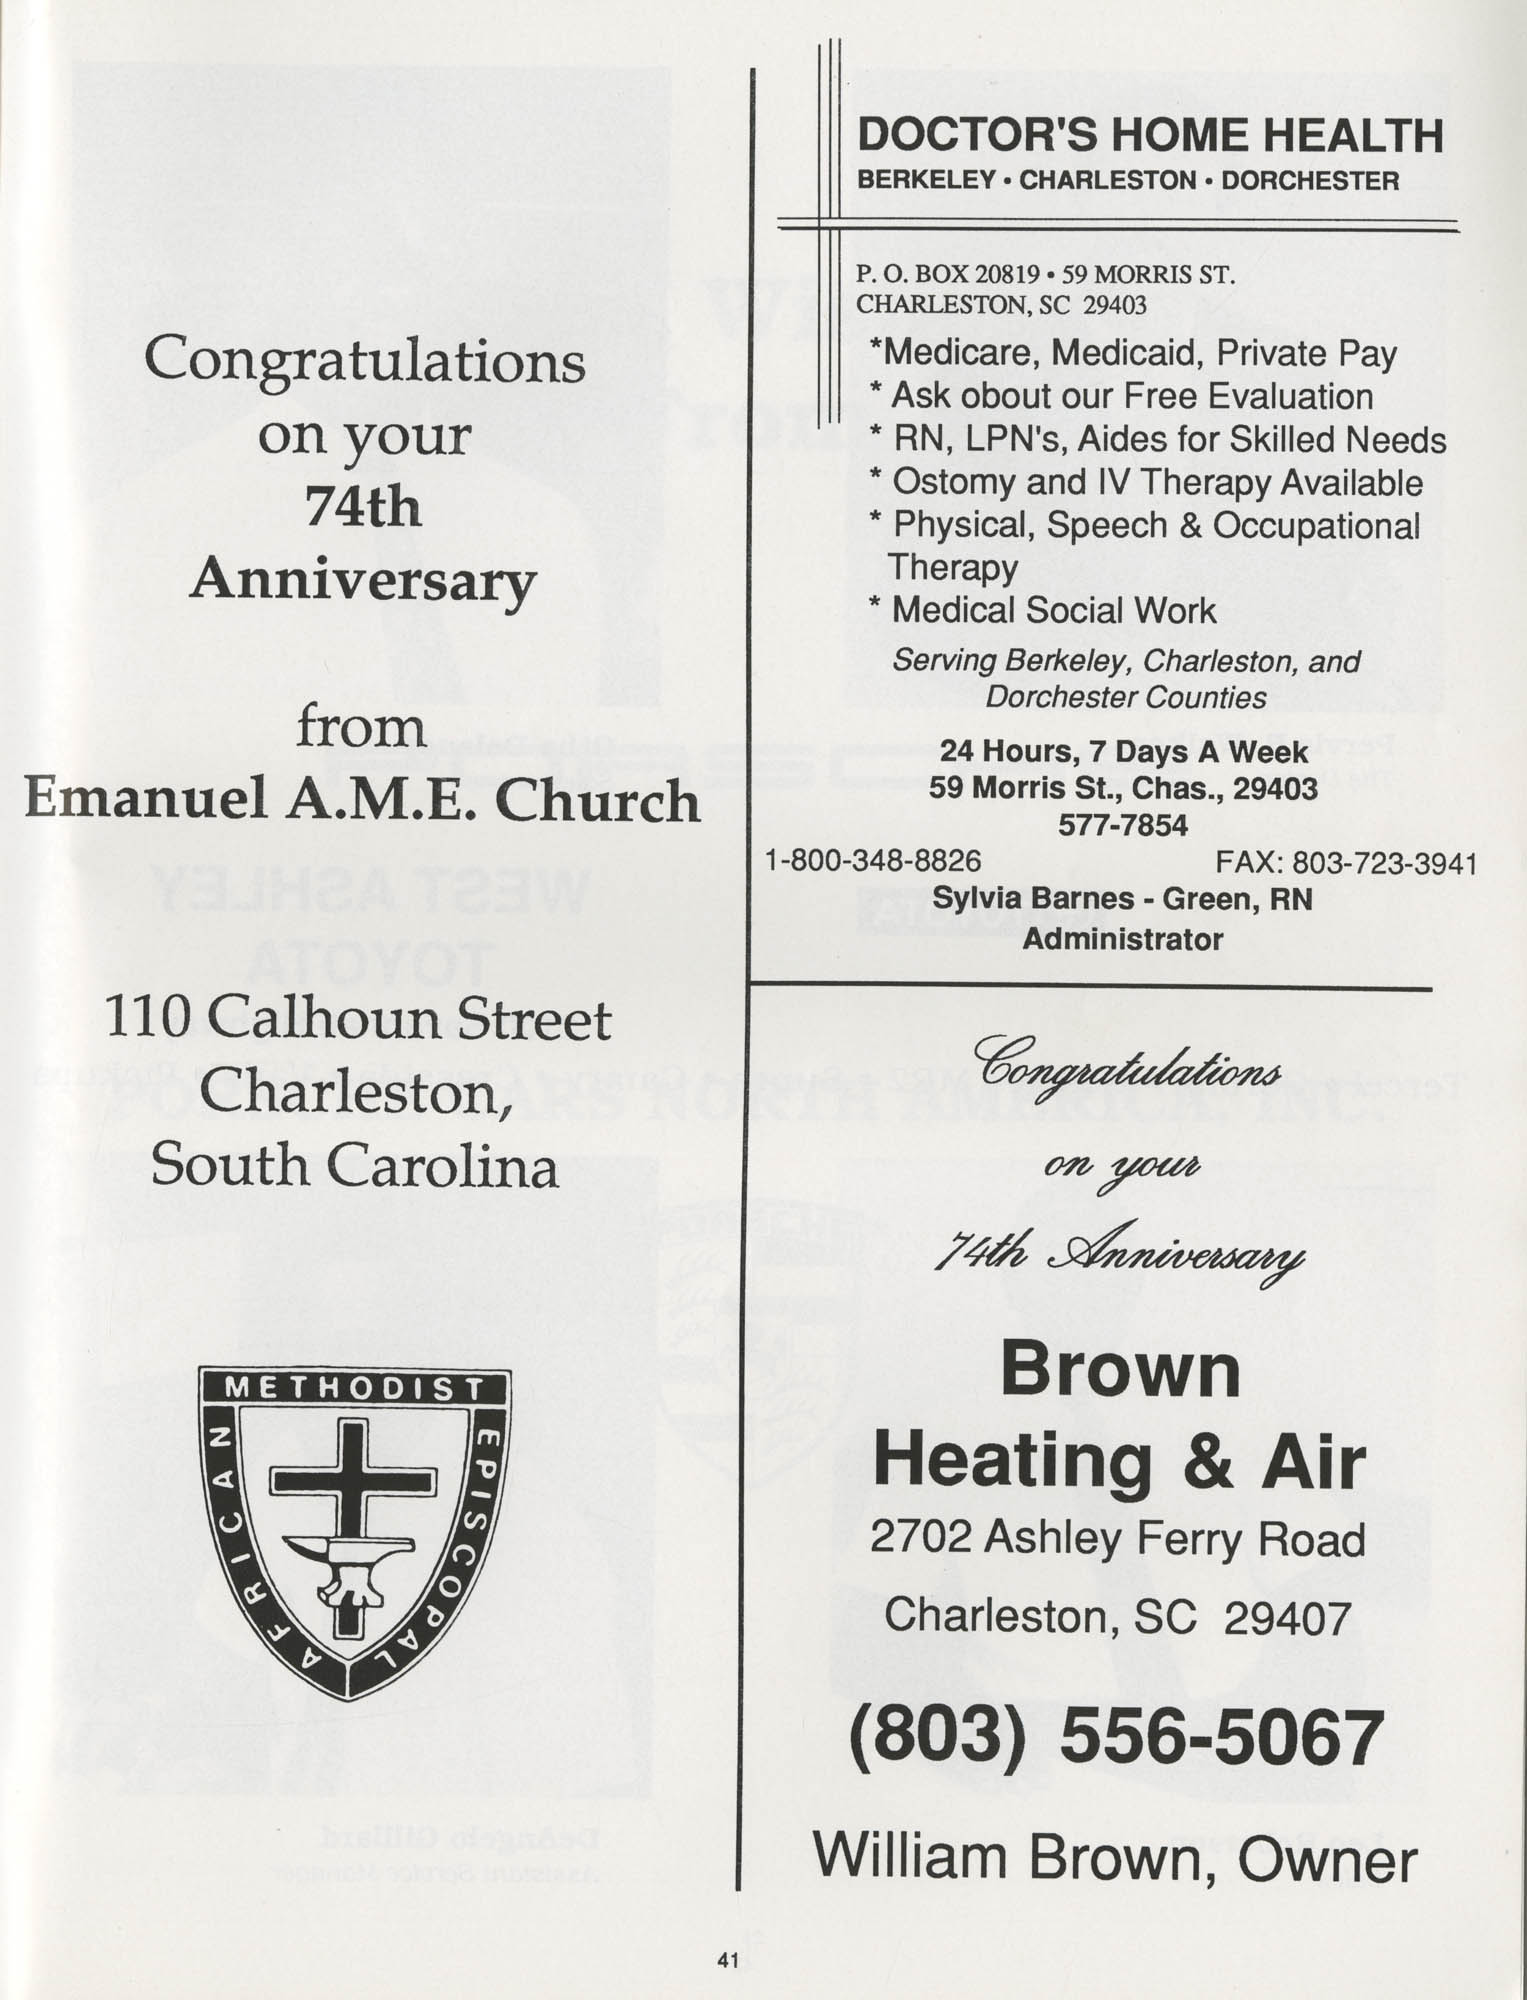 1990 NAACP Freedom Fund Magazine, Charleston Branch of the NAACP, 74th Anniversary, Page 41